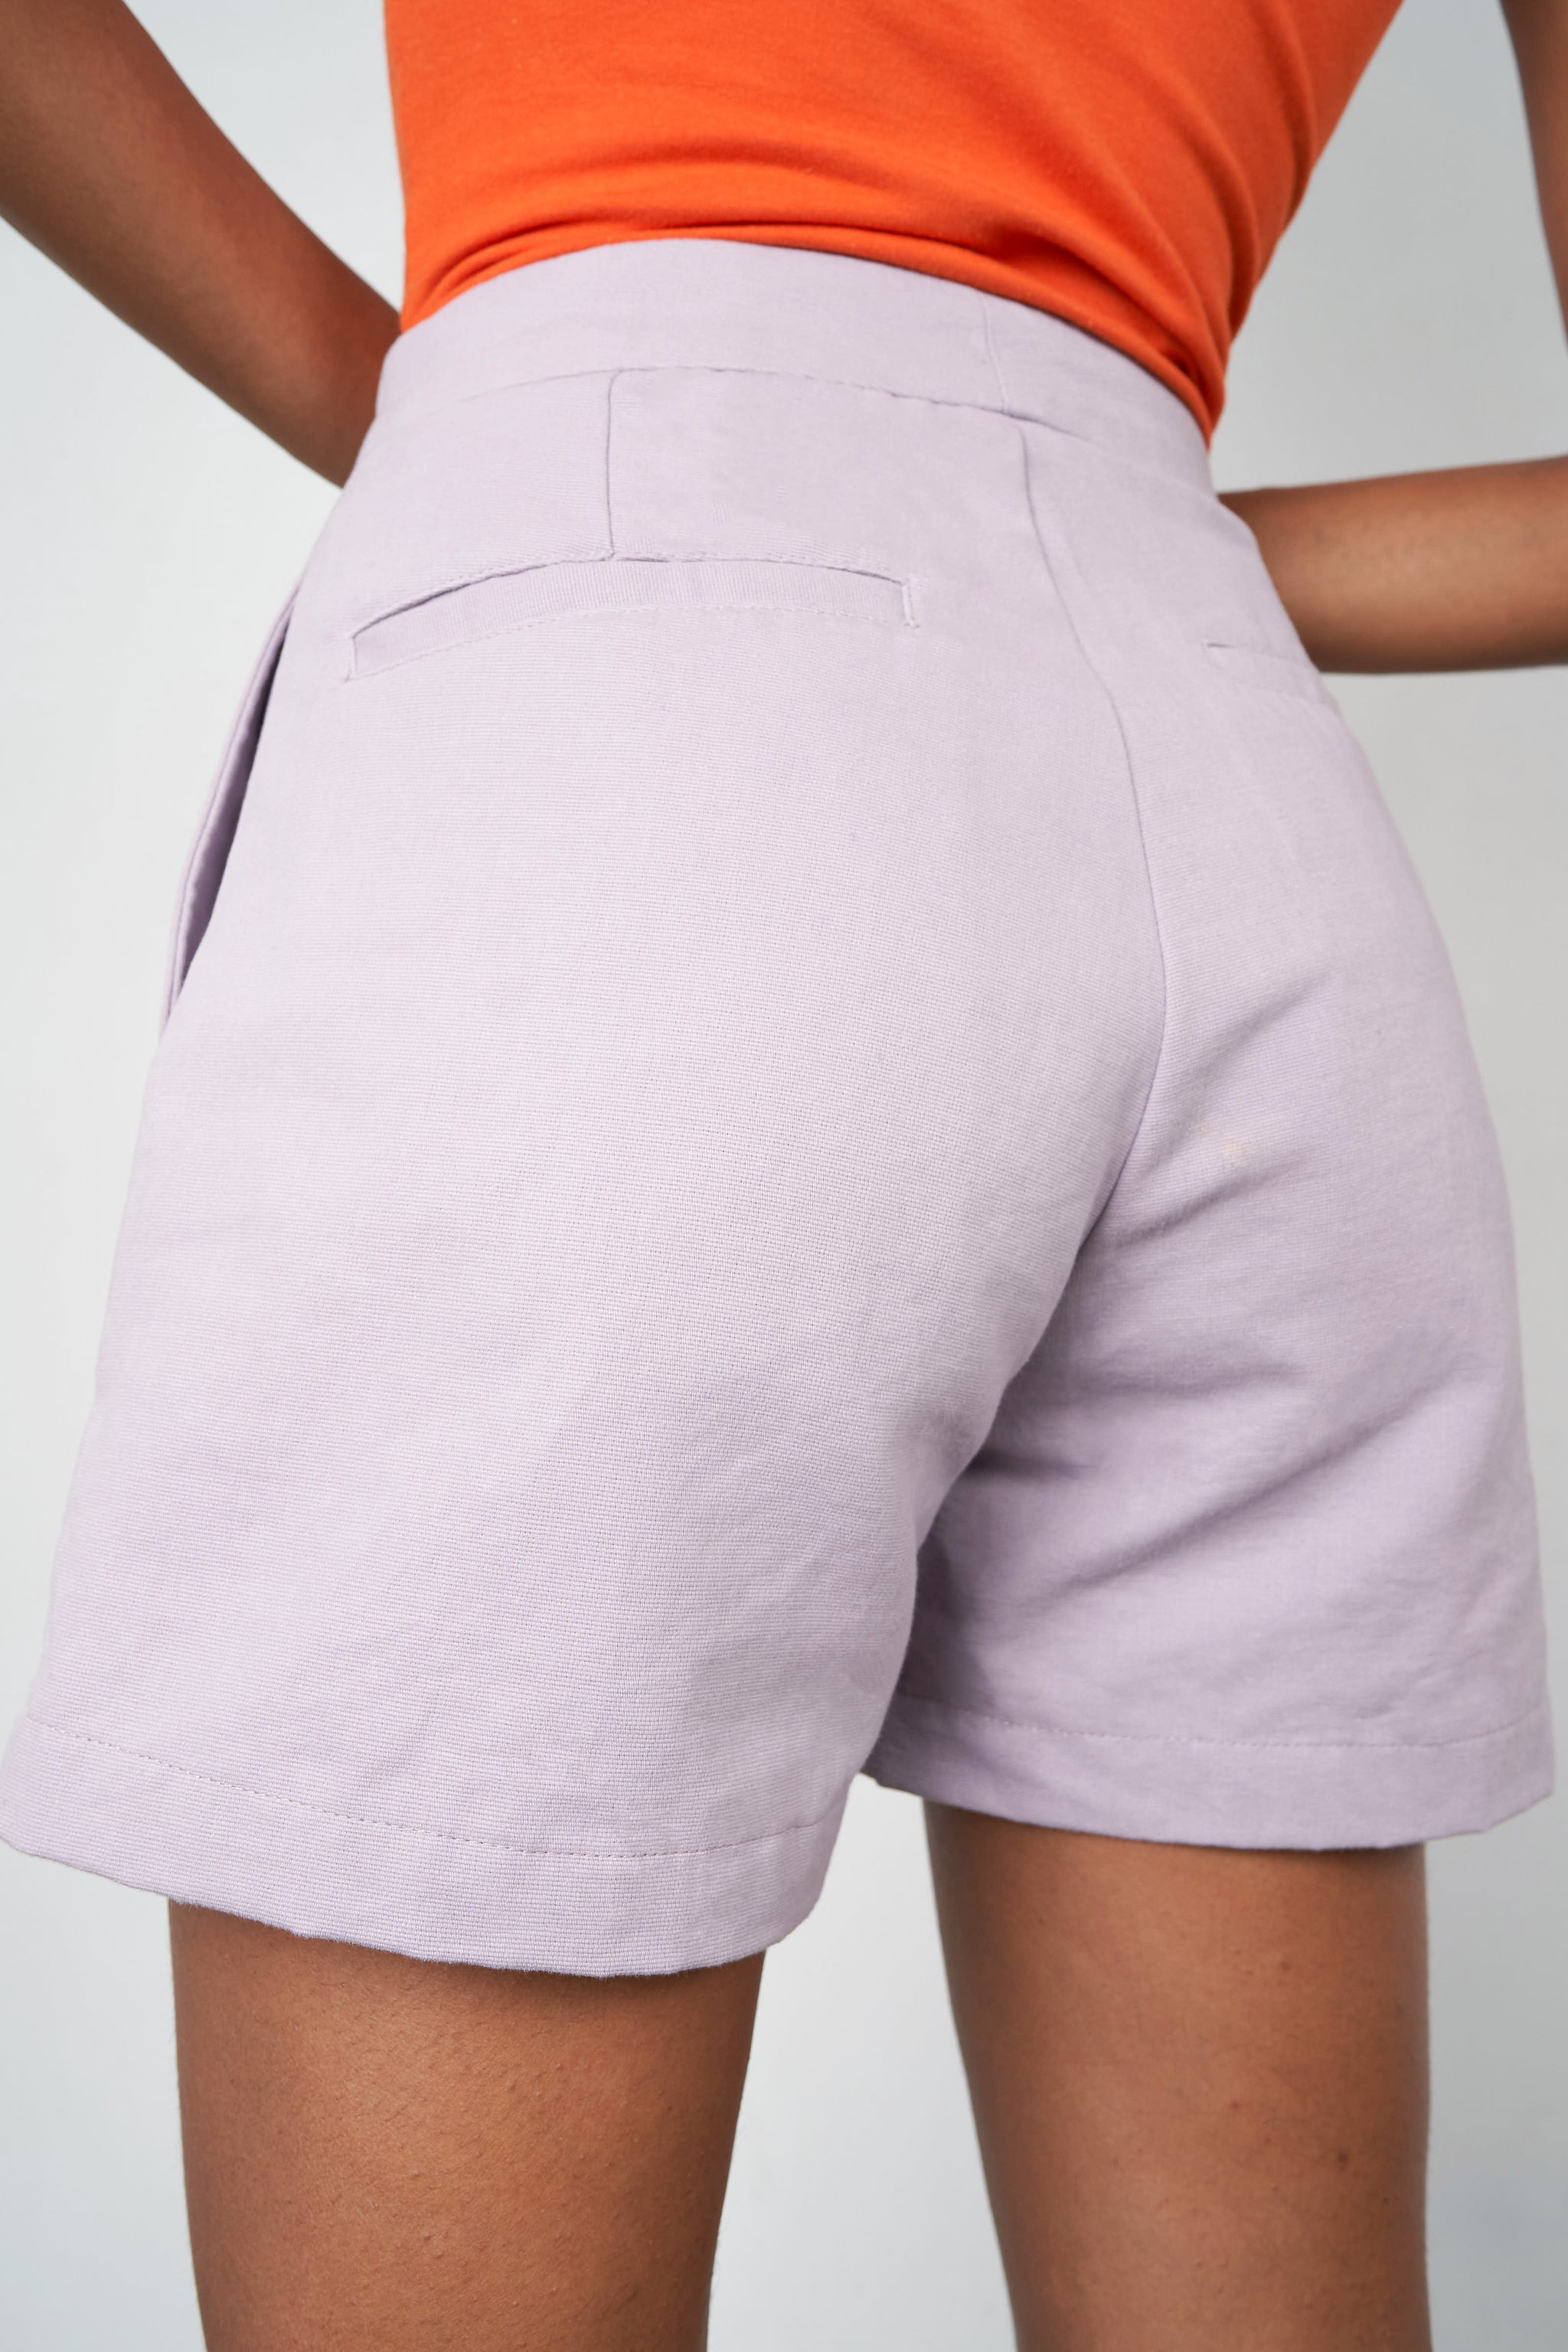 Arthur Apparel AW20 Womenswear Australian Fashion High Waist Cotton Shorts Pastel Purple Lilac